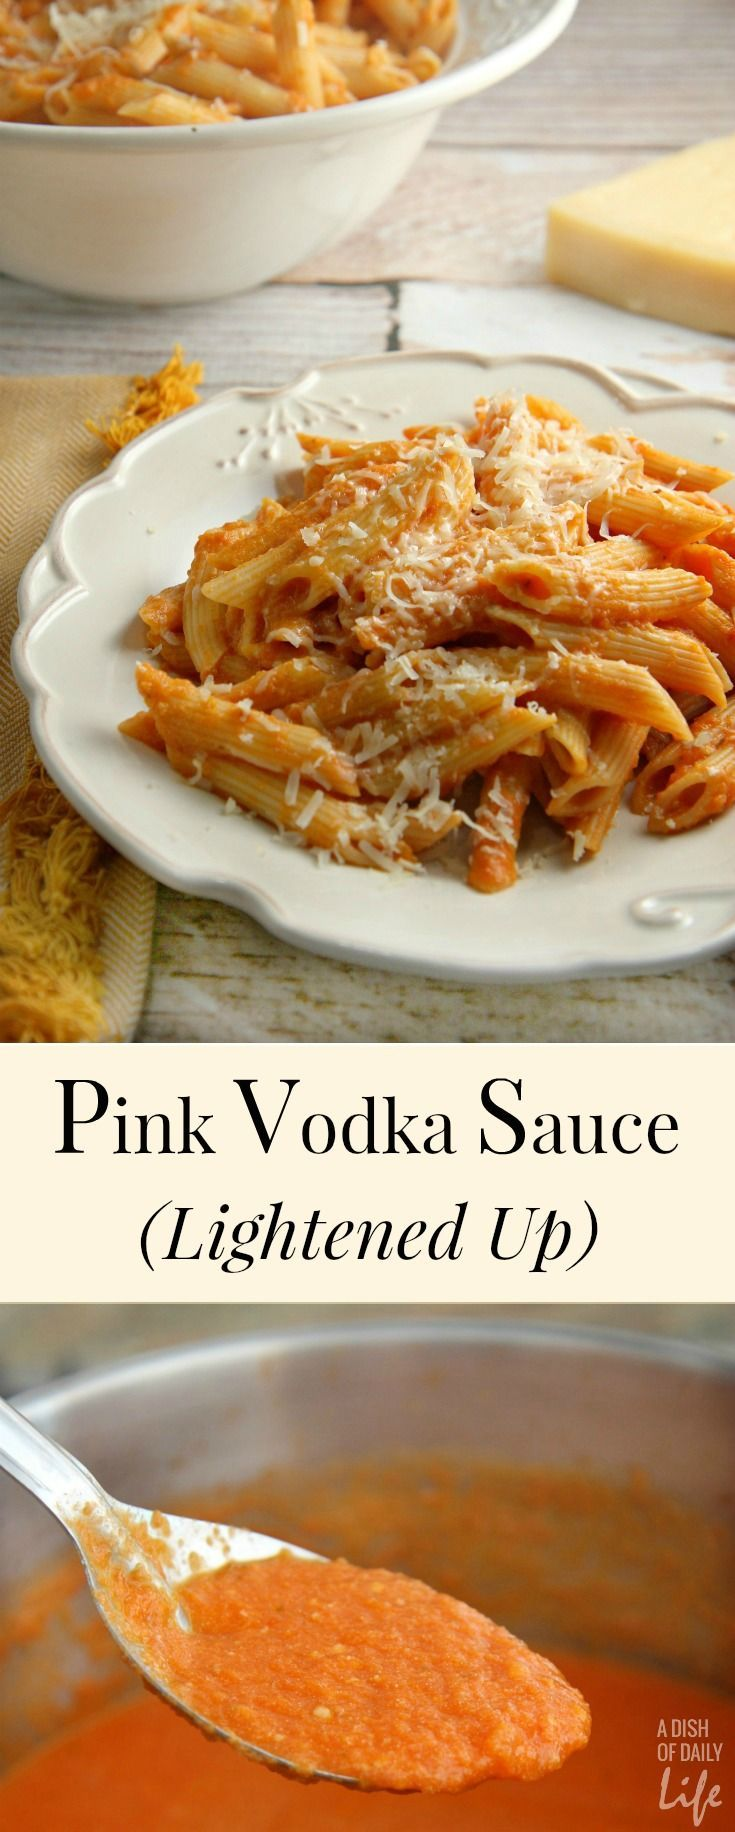 This Lightened Up Pink Vodka Sauce recipe, served over pasta, is a delicious easy meal when you need to get dinner on the table fast! It makes enough sauce for two pounds of pasta, so freeze your leftover sauce for another night. Created for Cooking for a Cure for Breast Cancer Awareness Month.